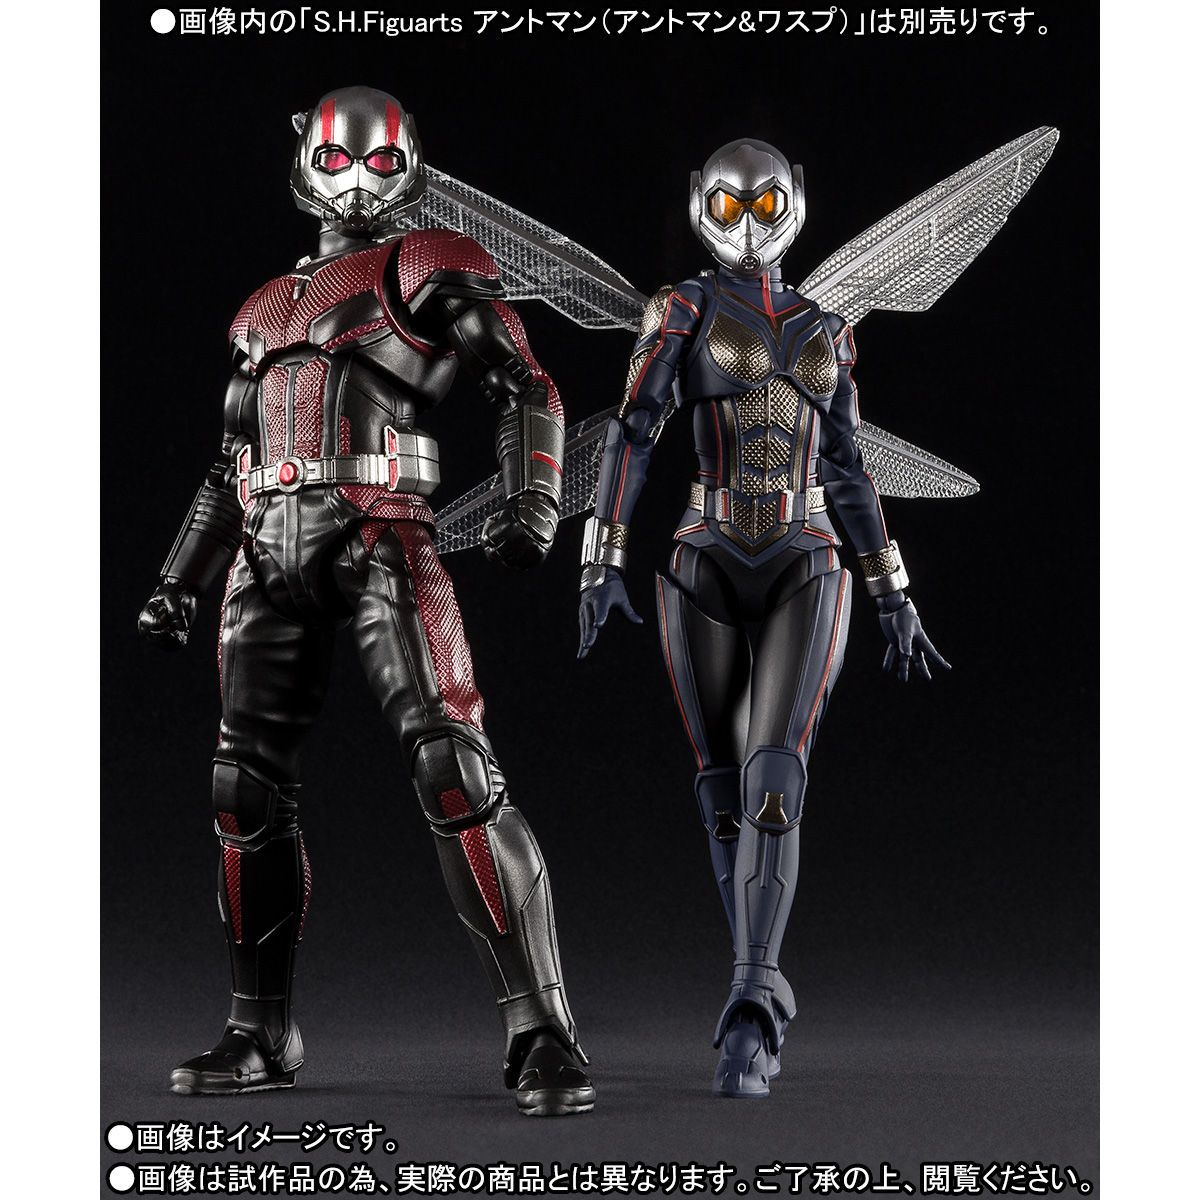 Bandai S.H.Figuarts Wasp Japan version Ant-Man and the Wasp